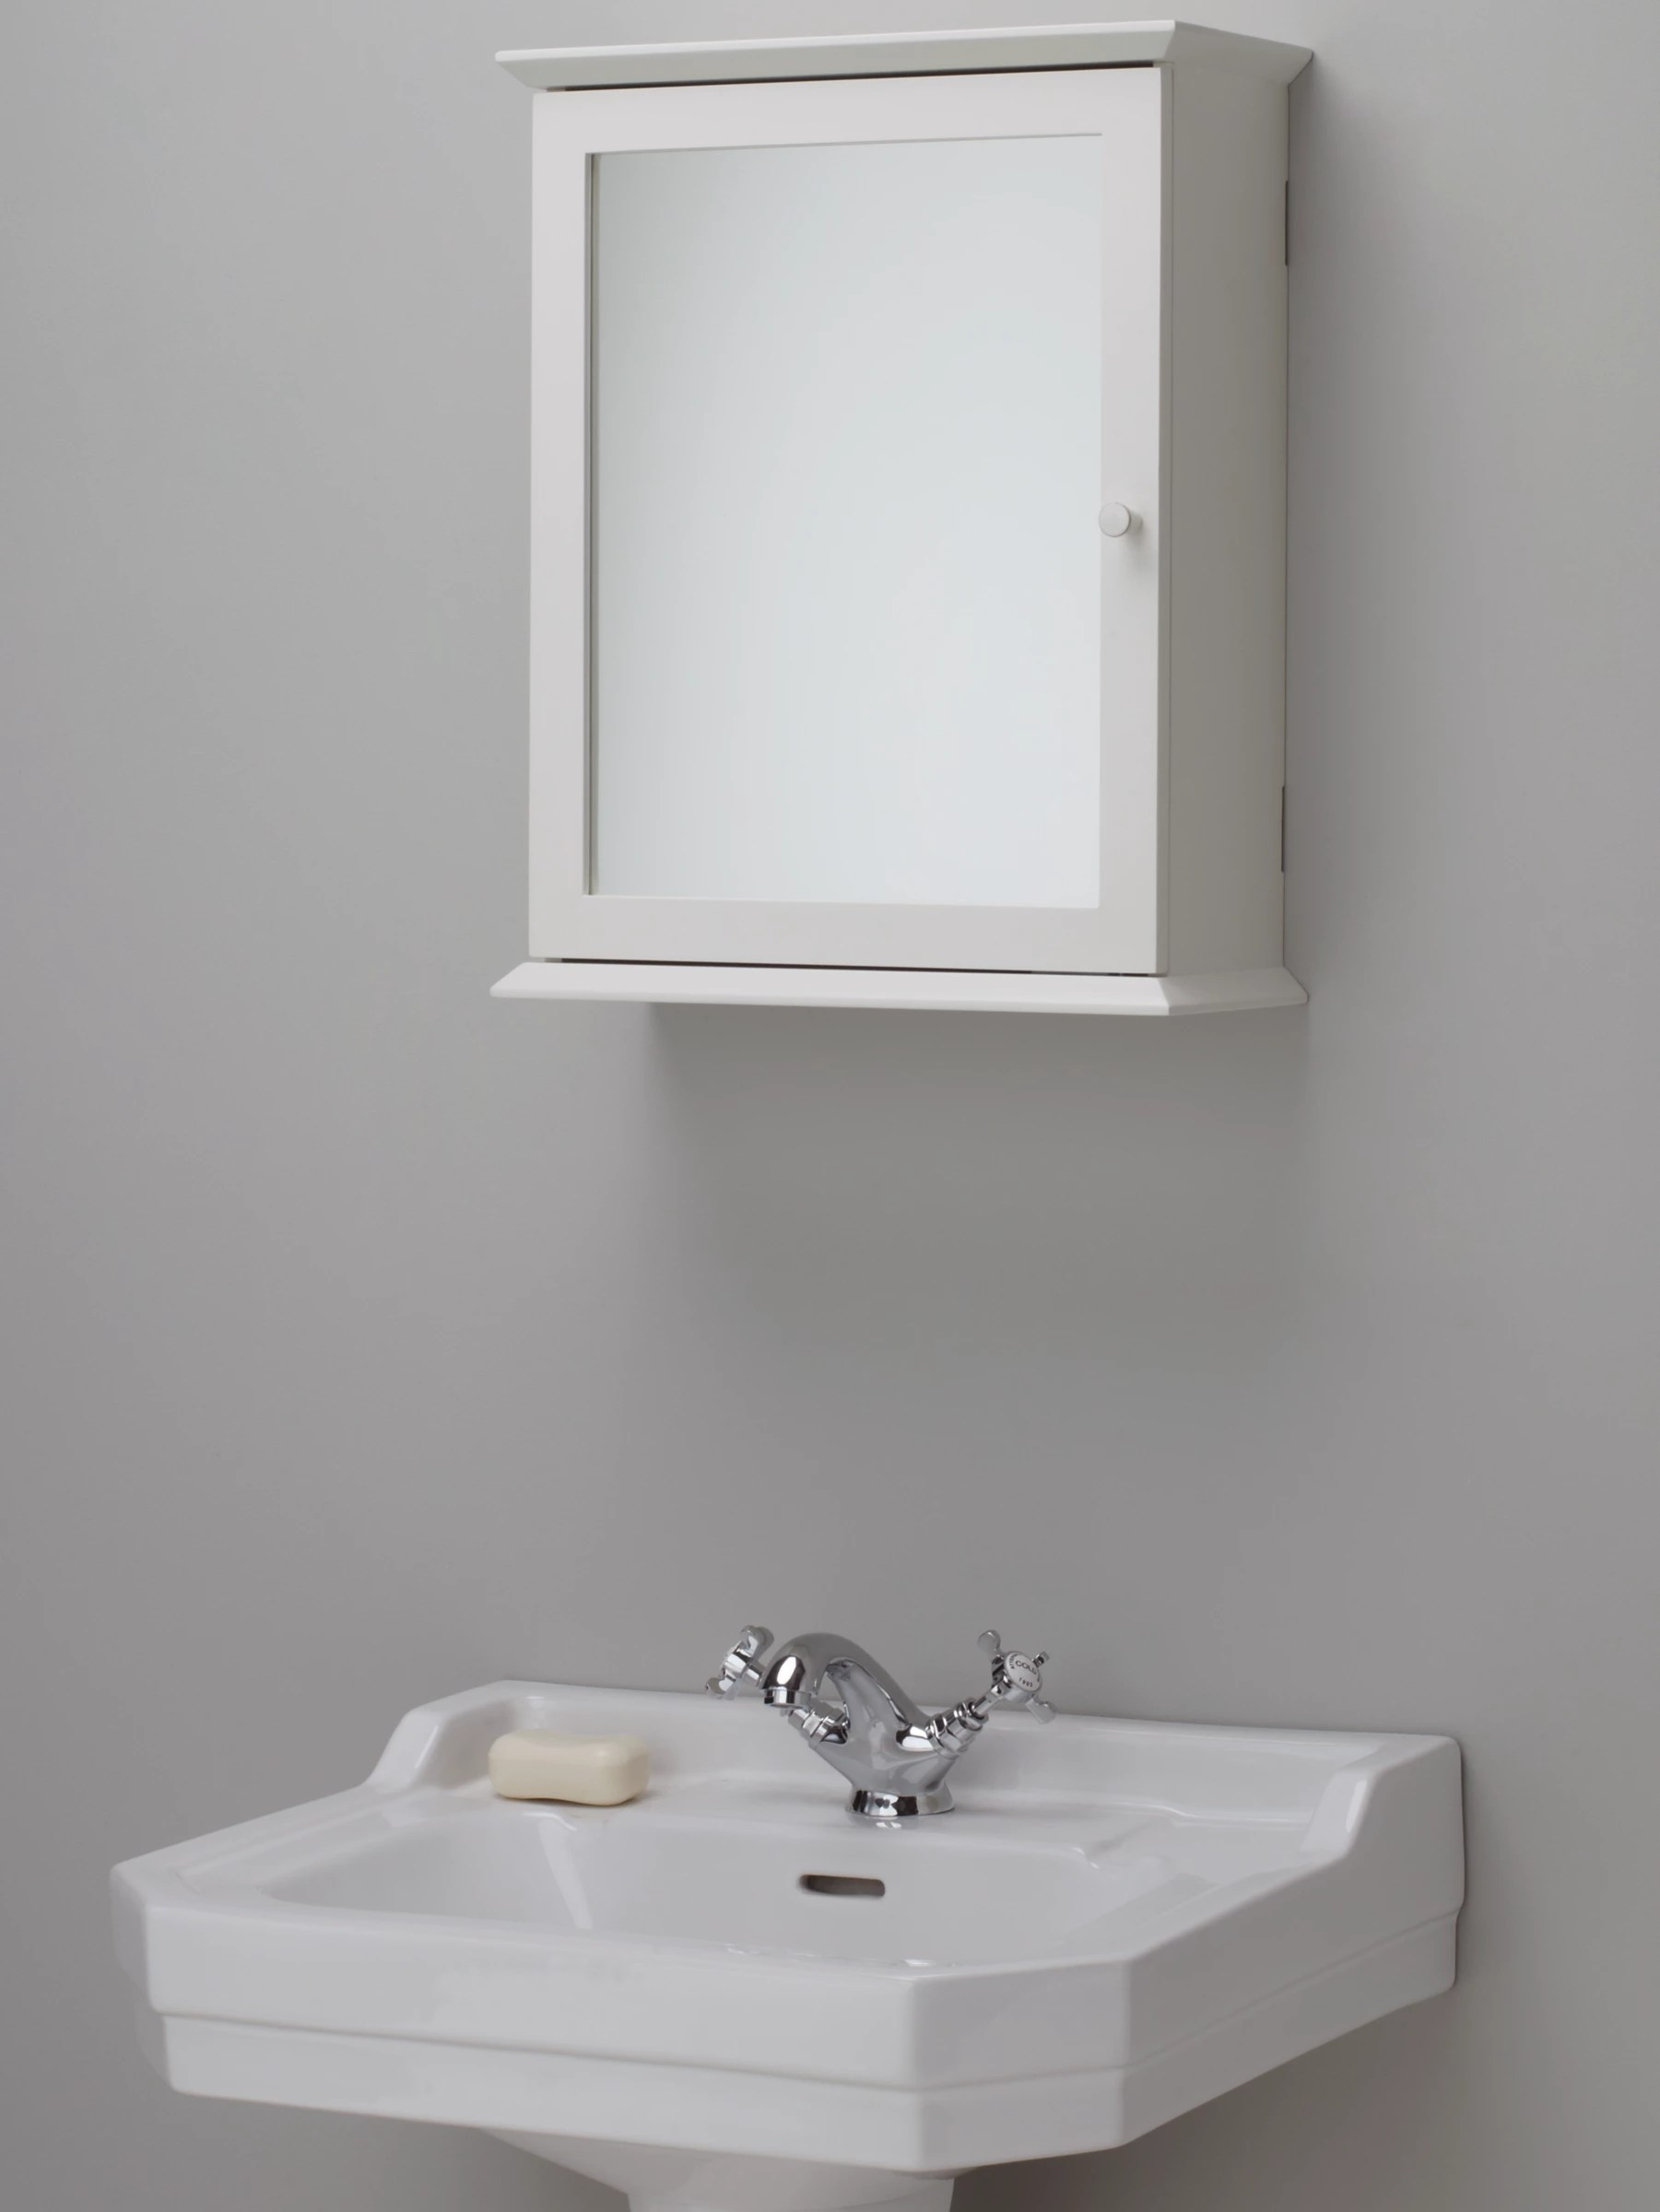 Bathroom Cabinet With Mirror John Lewis St Ives Single Mirrored Bathroom Cabinet At